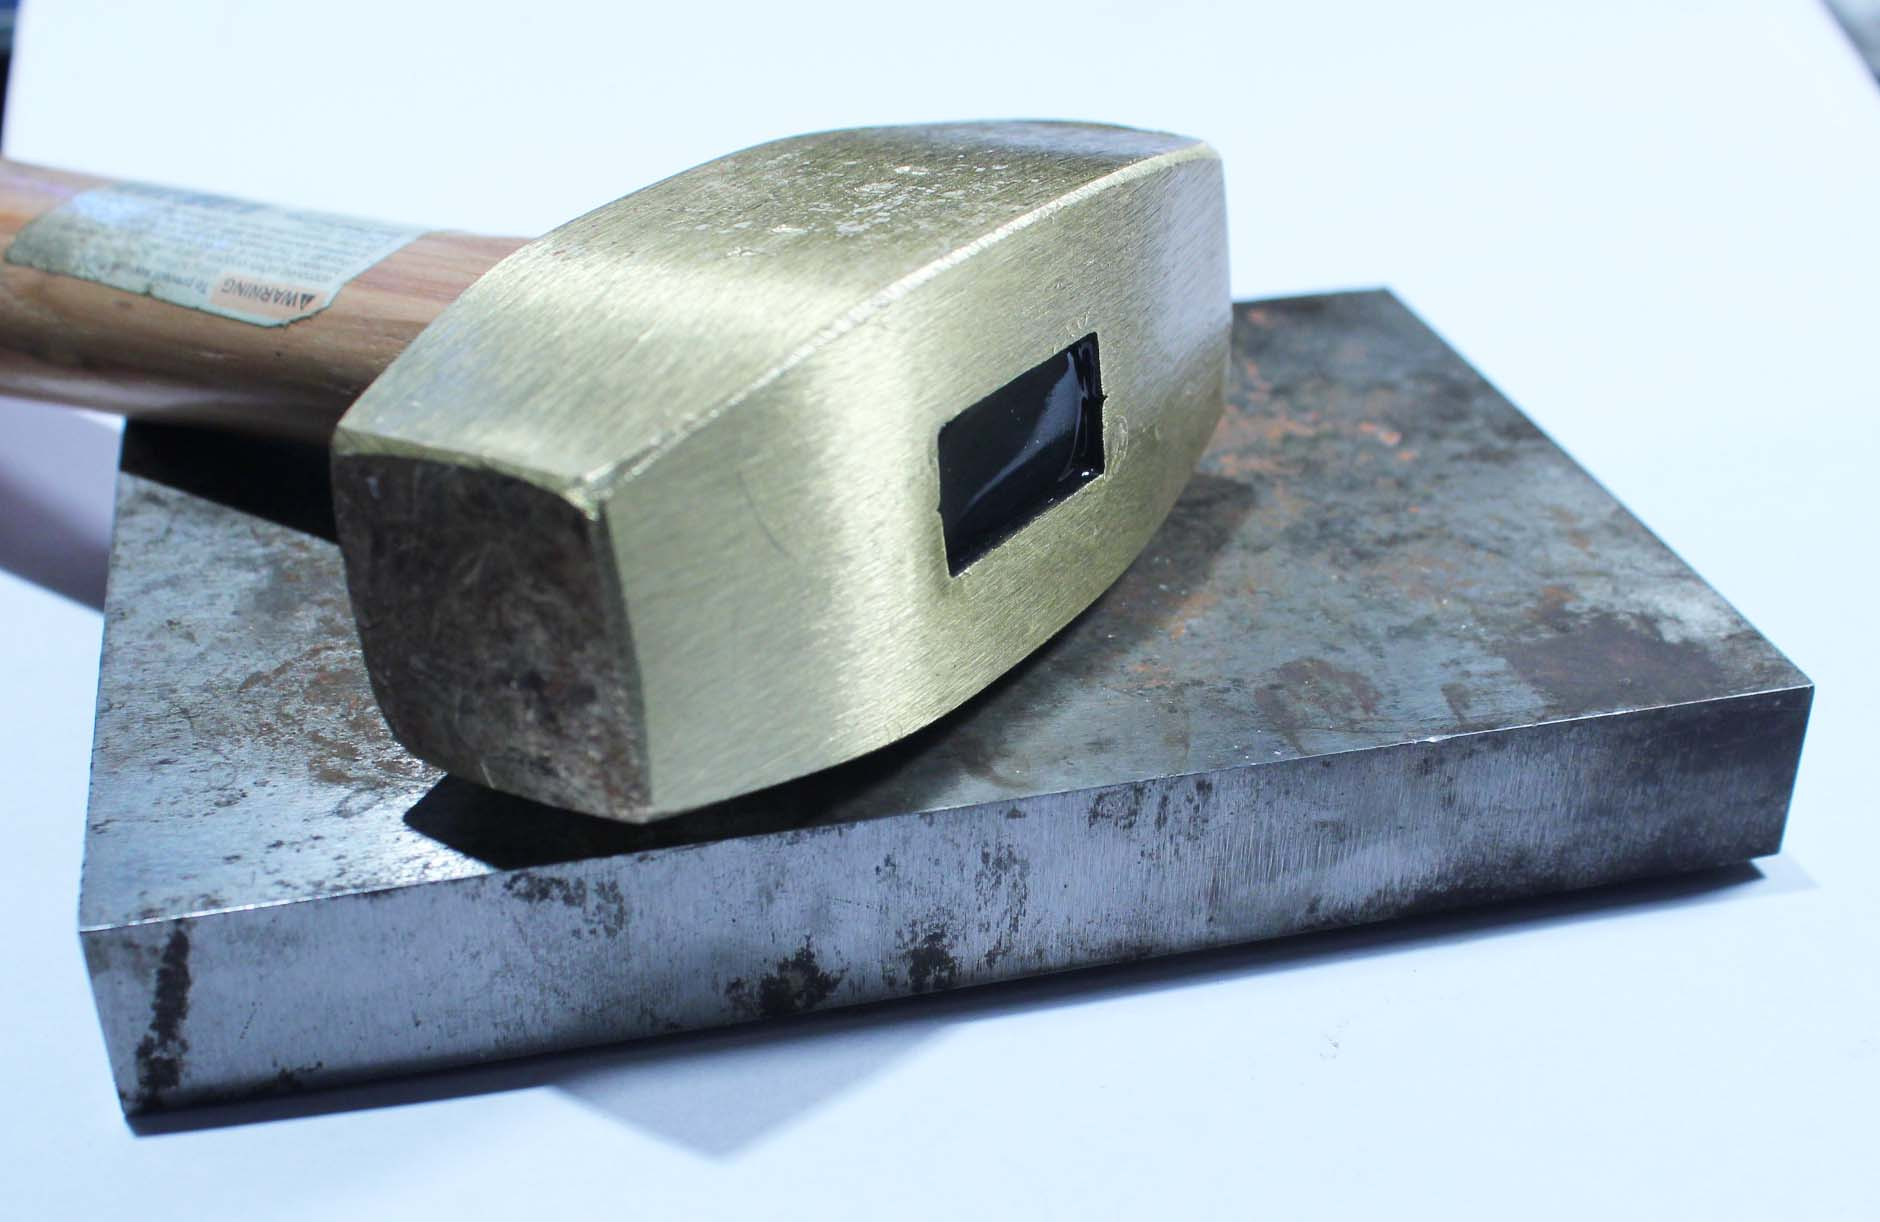 Brass hammer and steel bench block